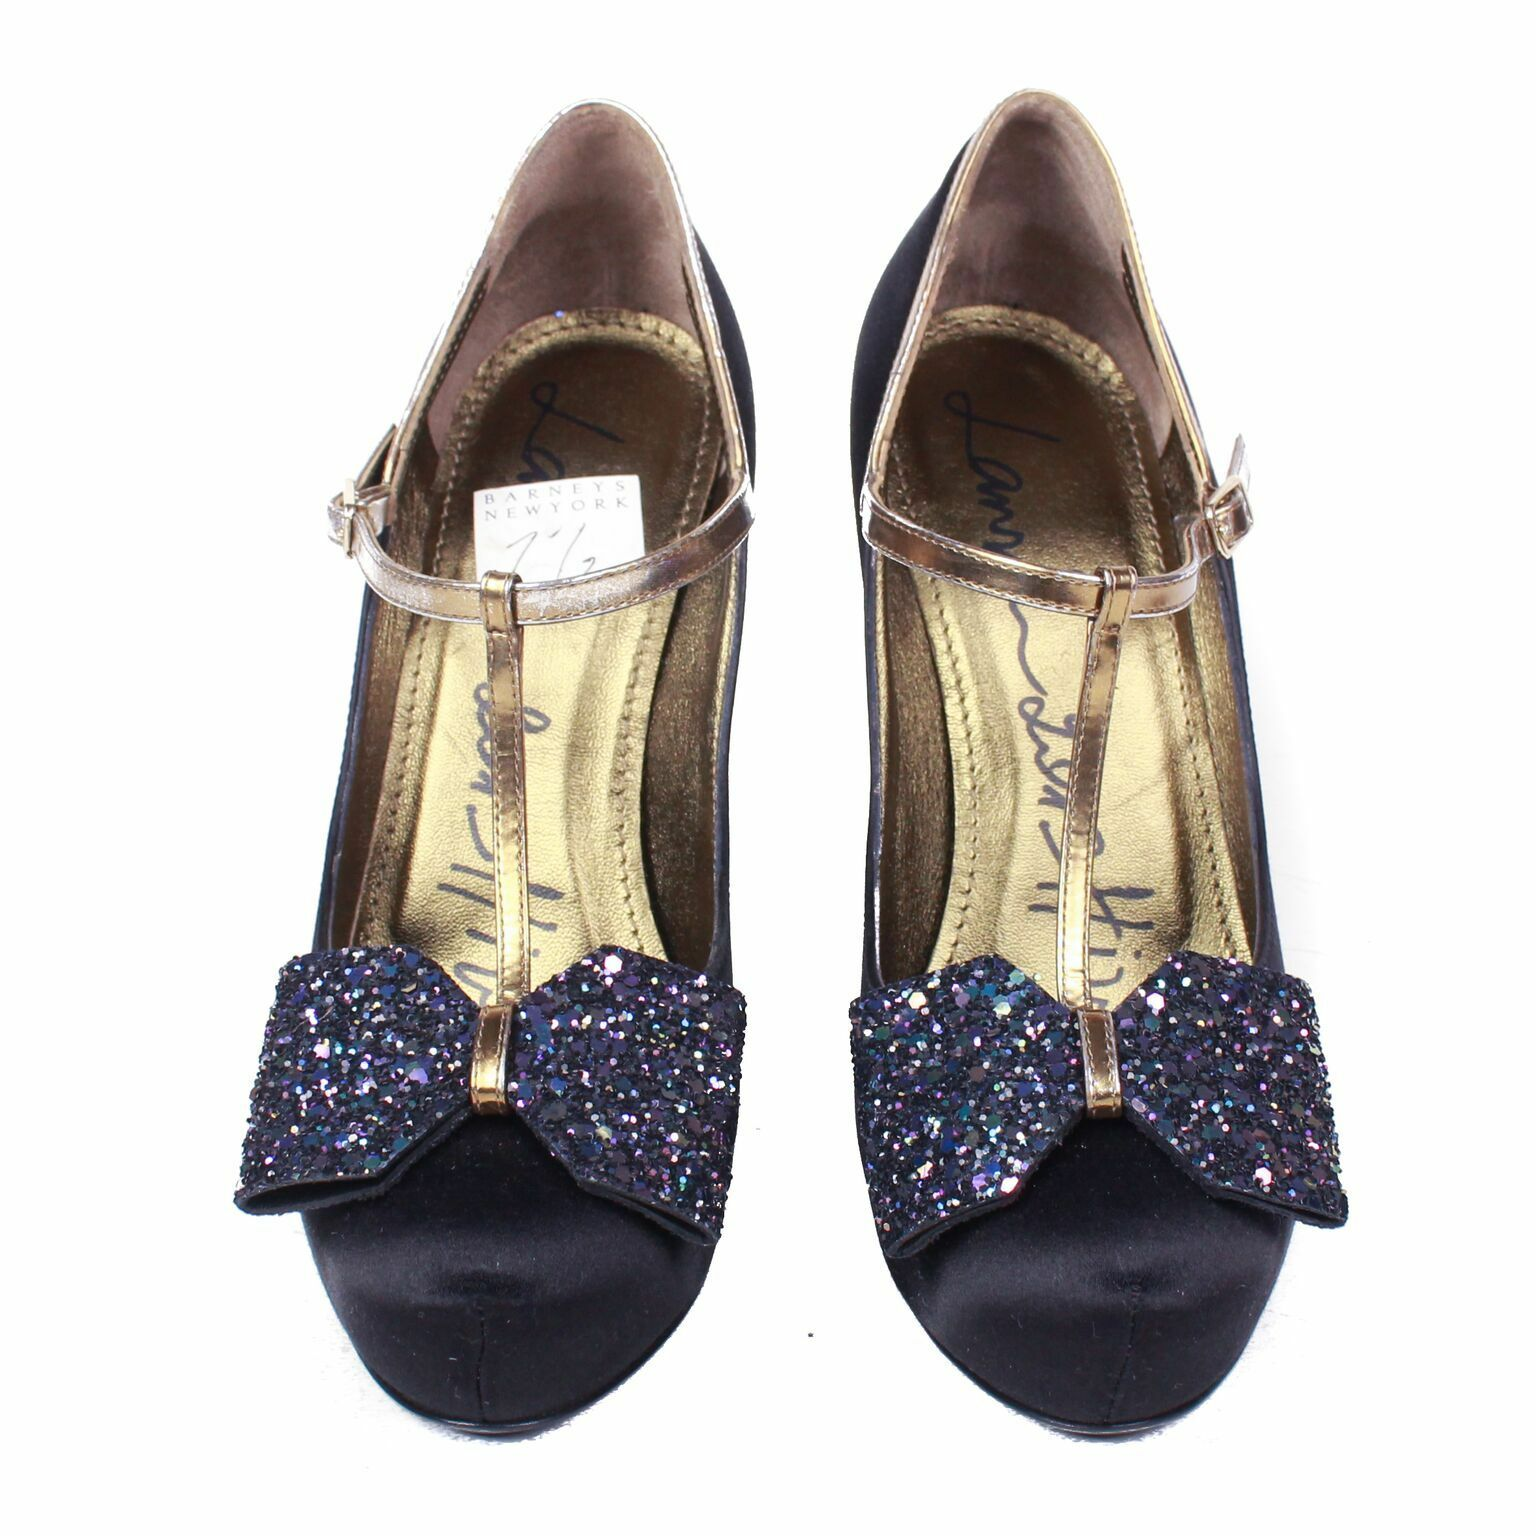 Lanvin - New - Crystal Bow Black Satin Heels - gold Straps US 7.5 - 37.5